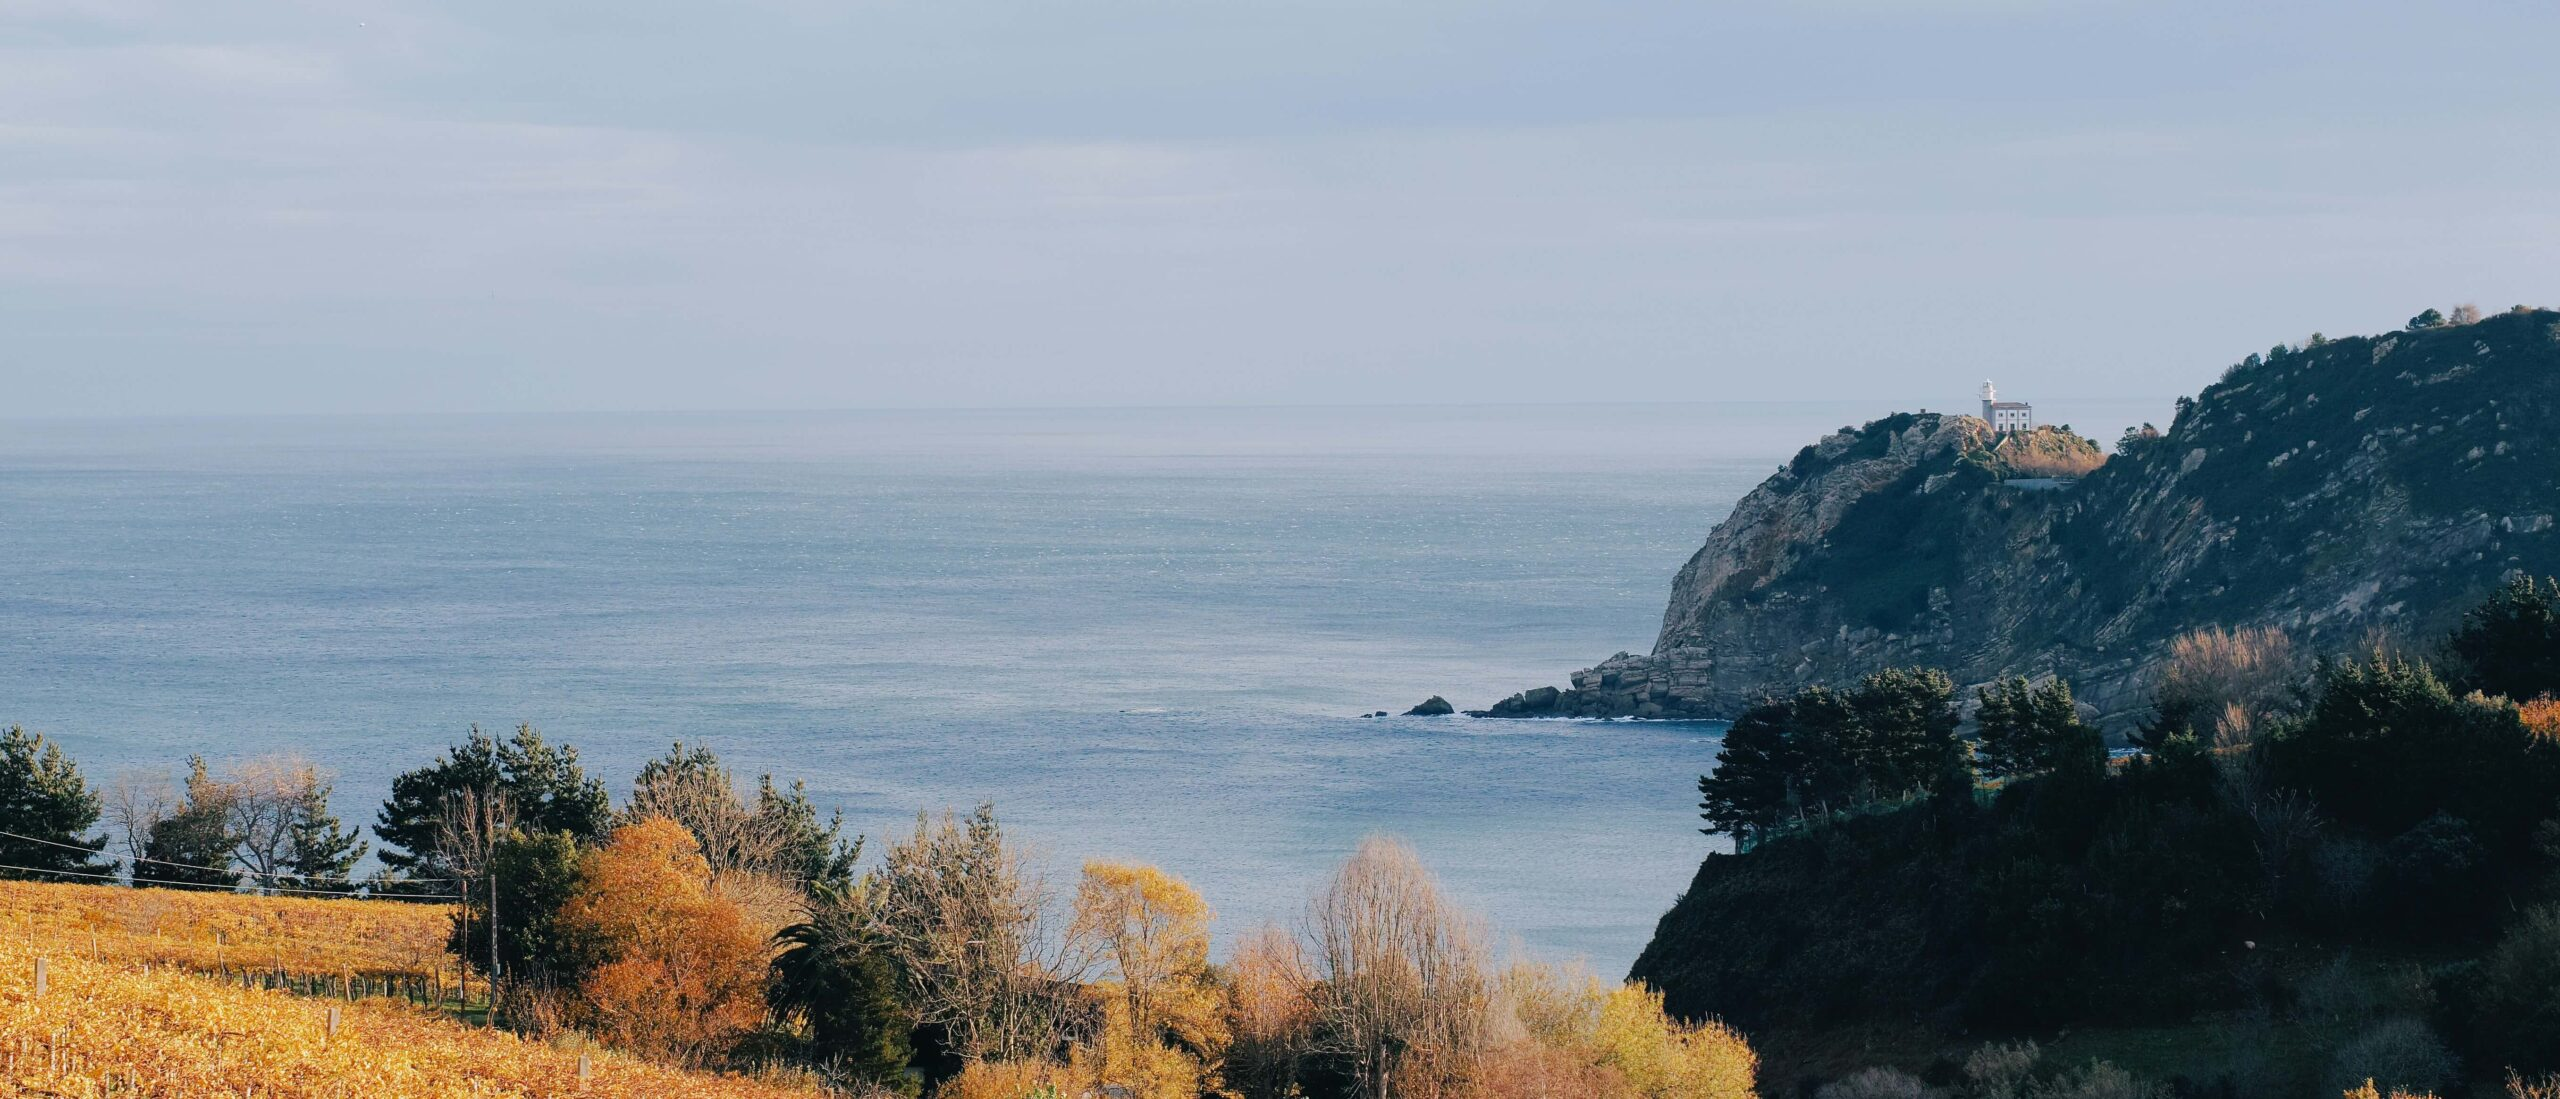 Distant lighthouse on an autumn morning seascape, in Getaria. Juan Sebastián Elcano's hometown, the first man to circumnavigate the earth.